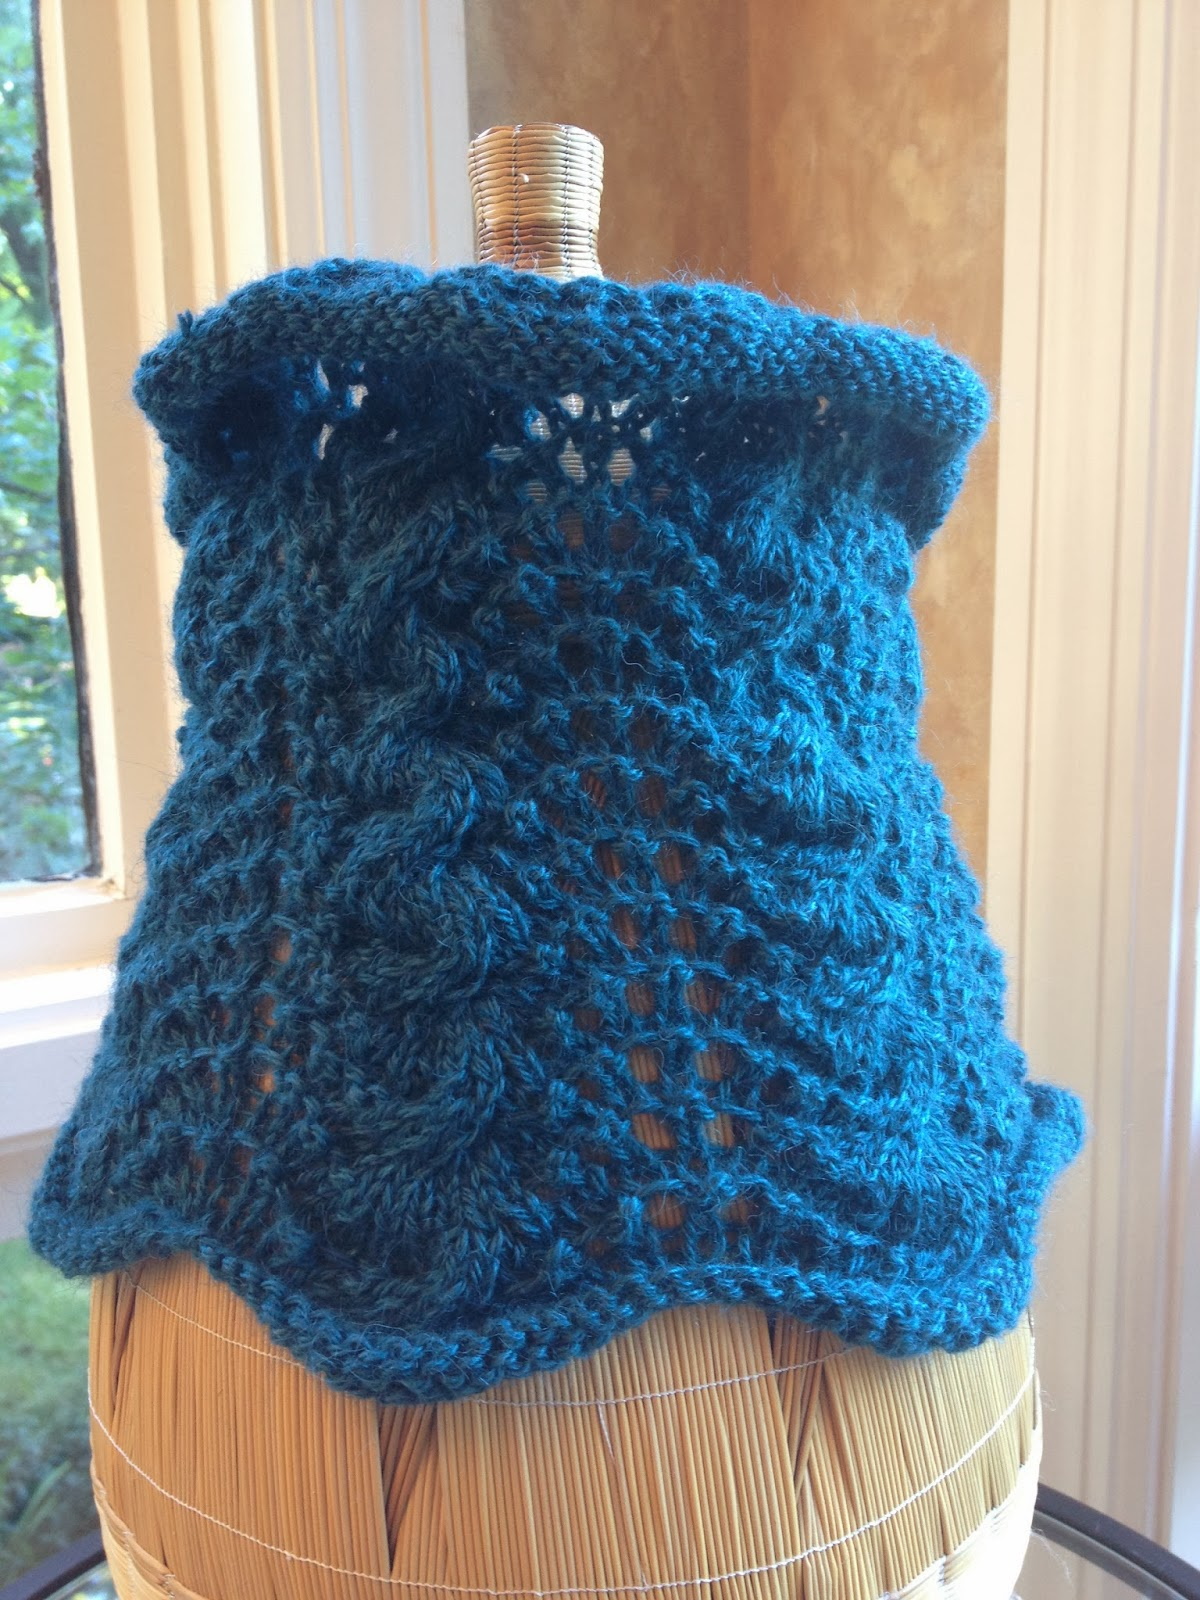 Cabled Feather Cowl from The Studio - Done! 6